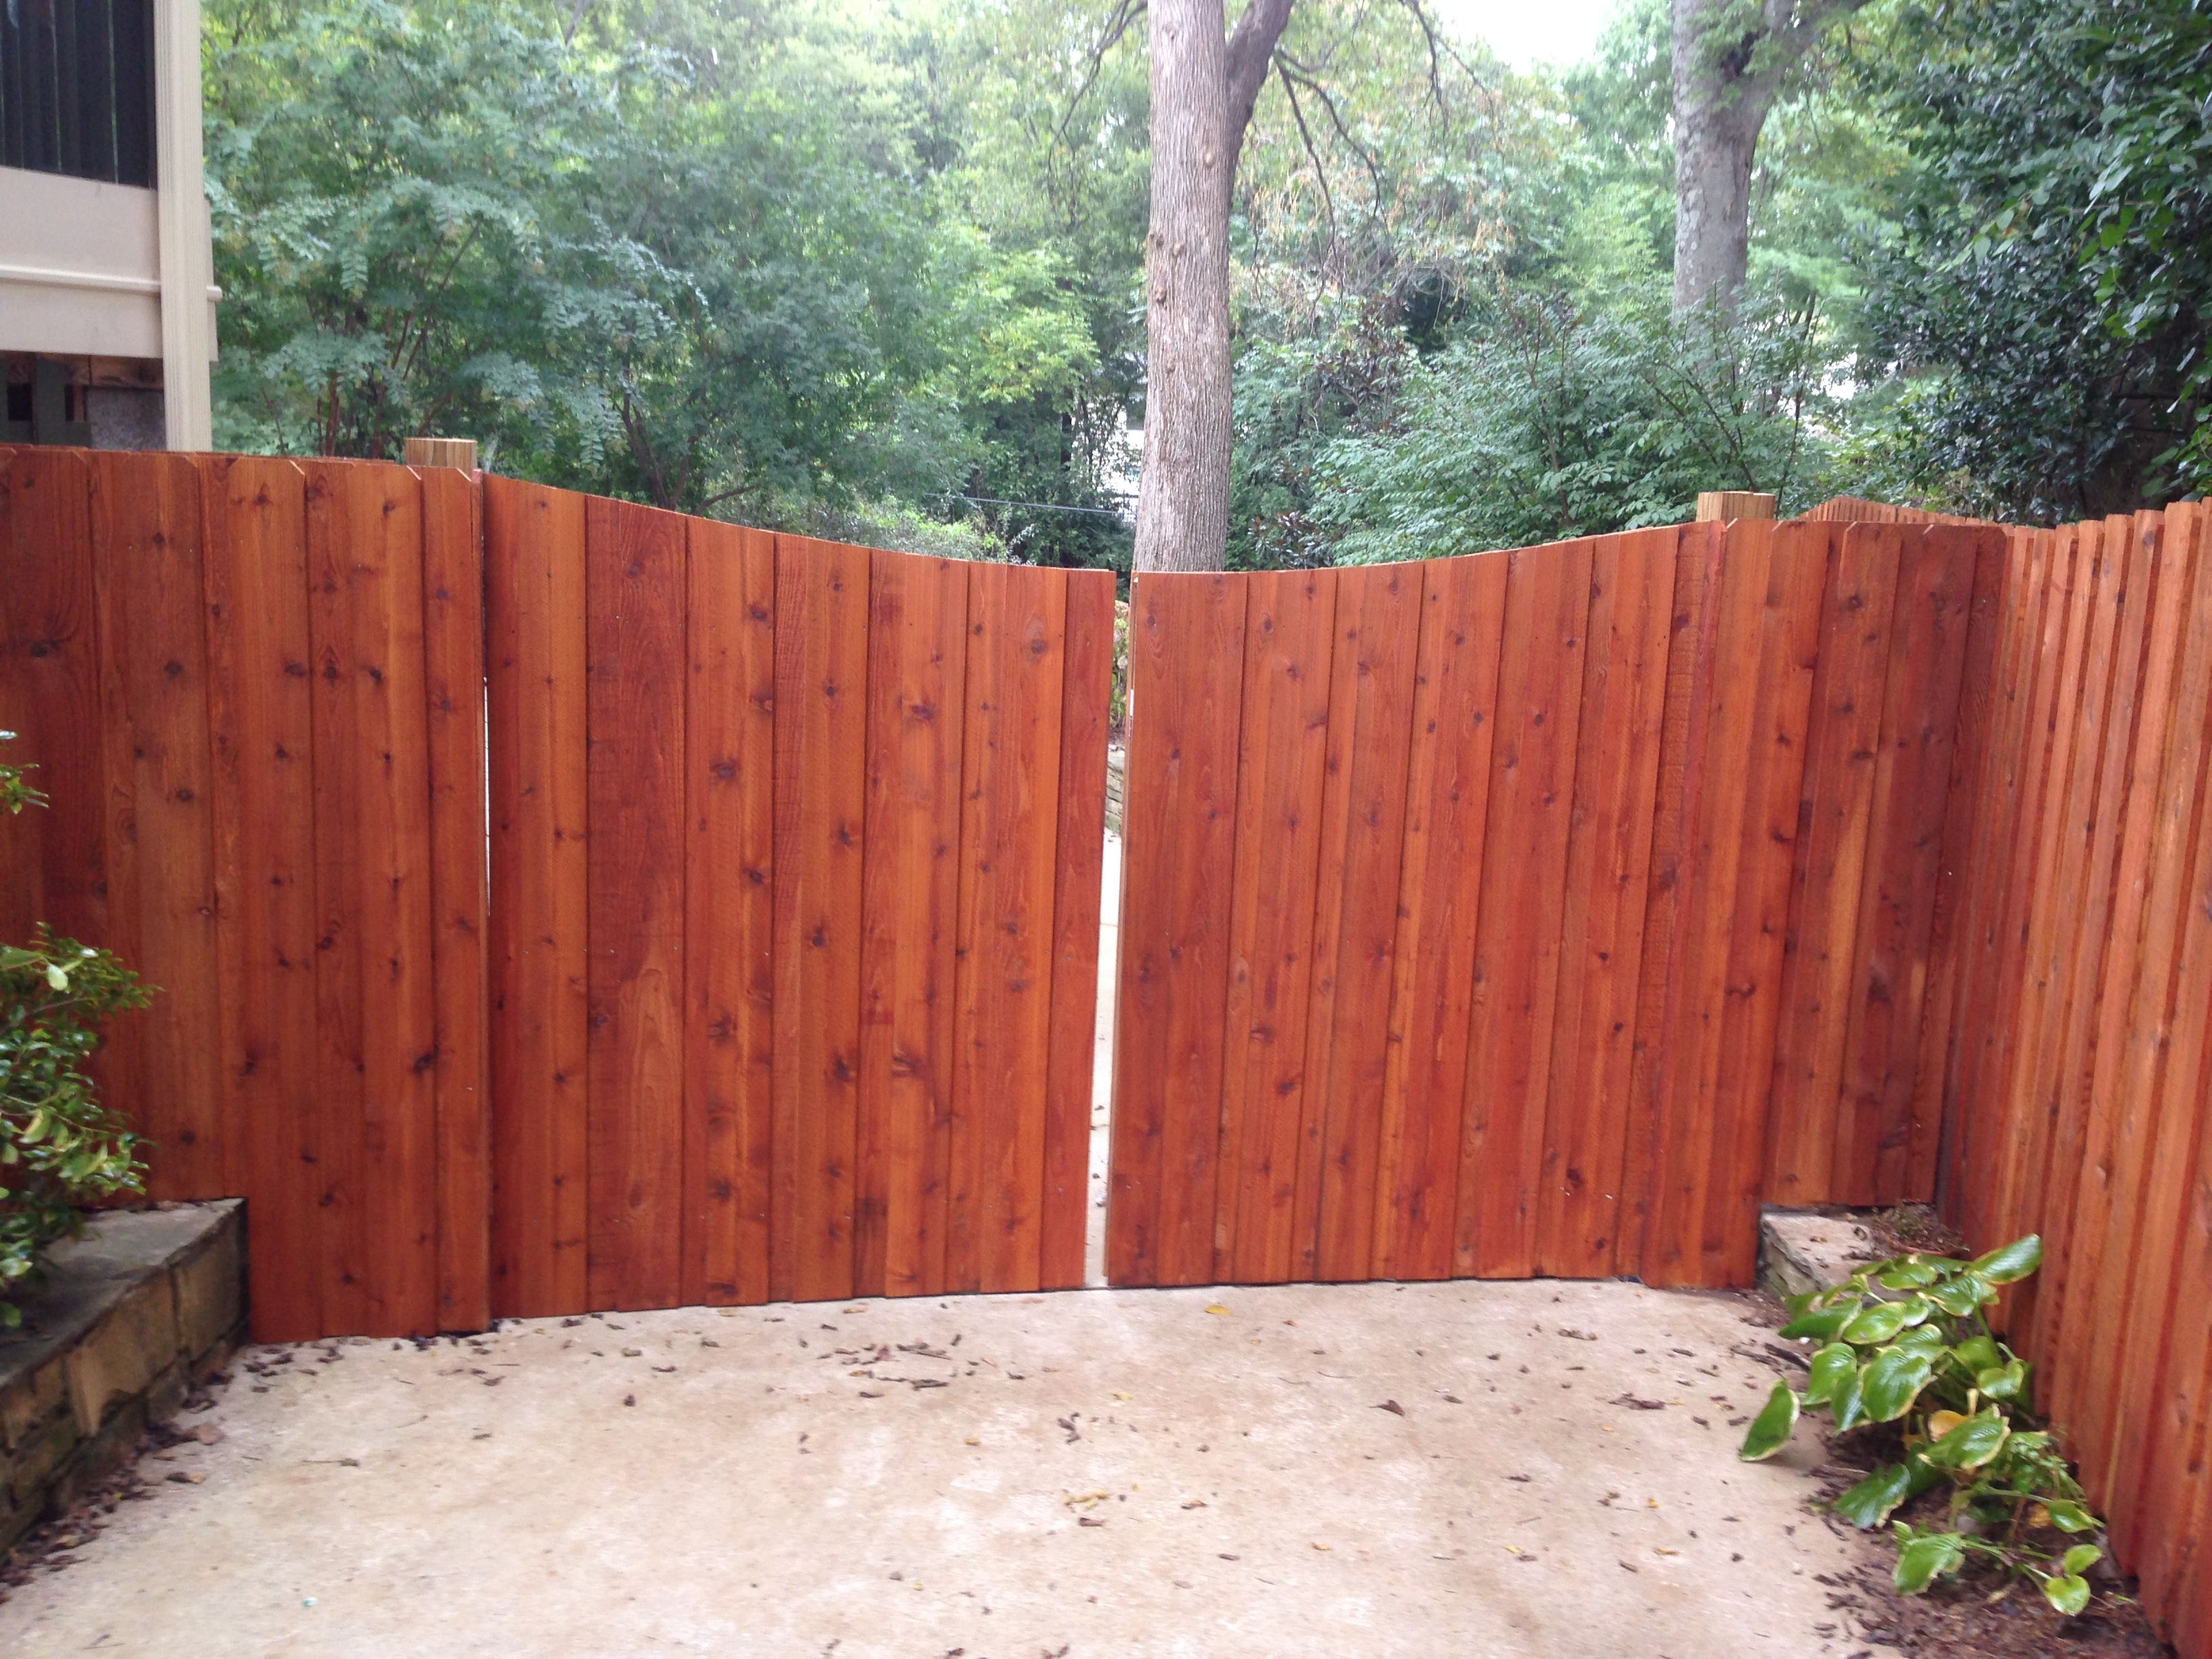 Wooden picket fence transparent backgroundgarden and gardening - Gardens Cedar Tone Fence Stain On Red Western Cedar Privacy Fence In West End Neighborhood Nashville